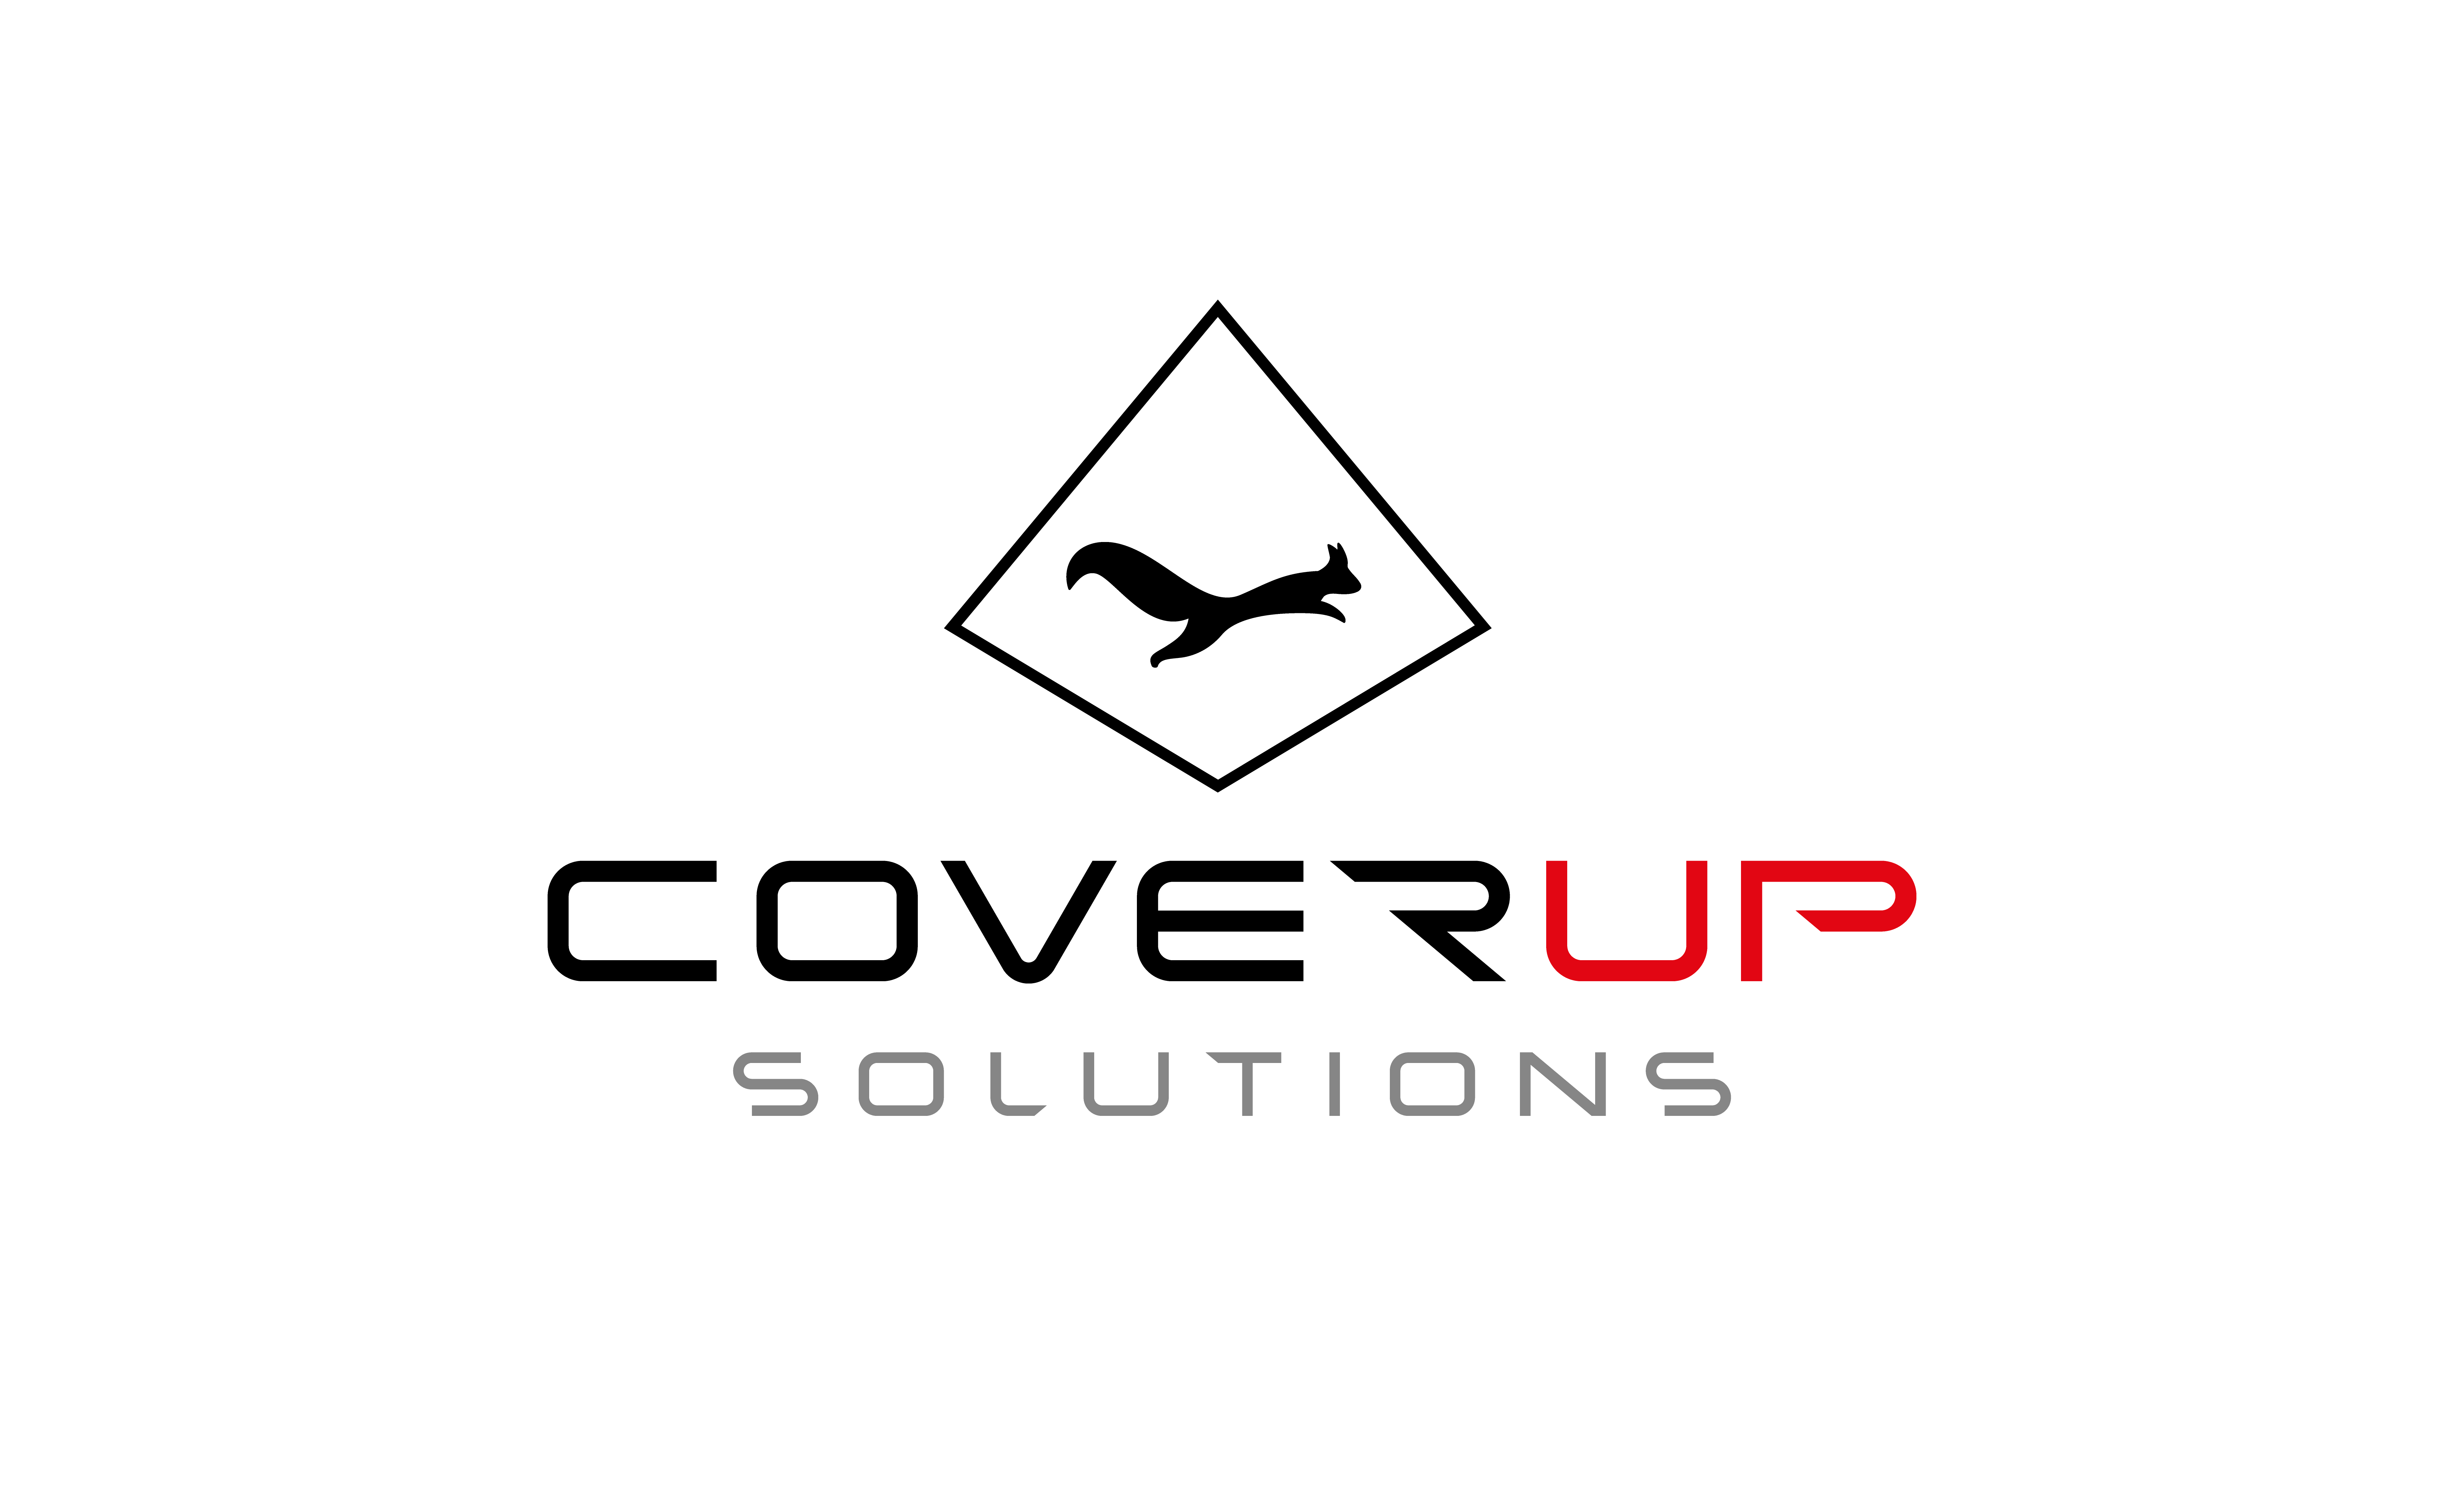 coverupsolutions.com